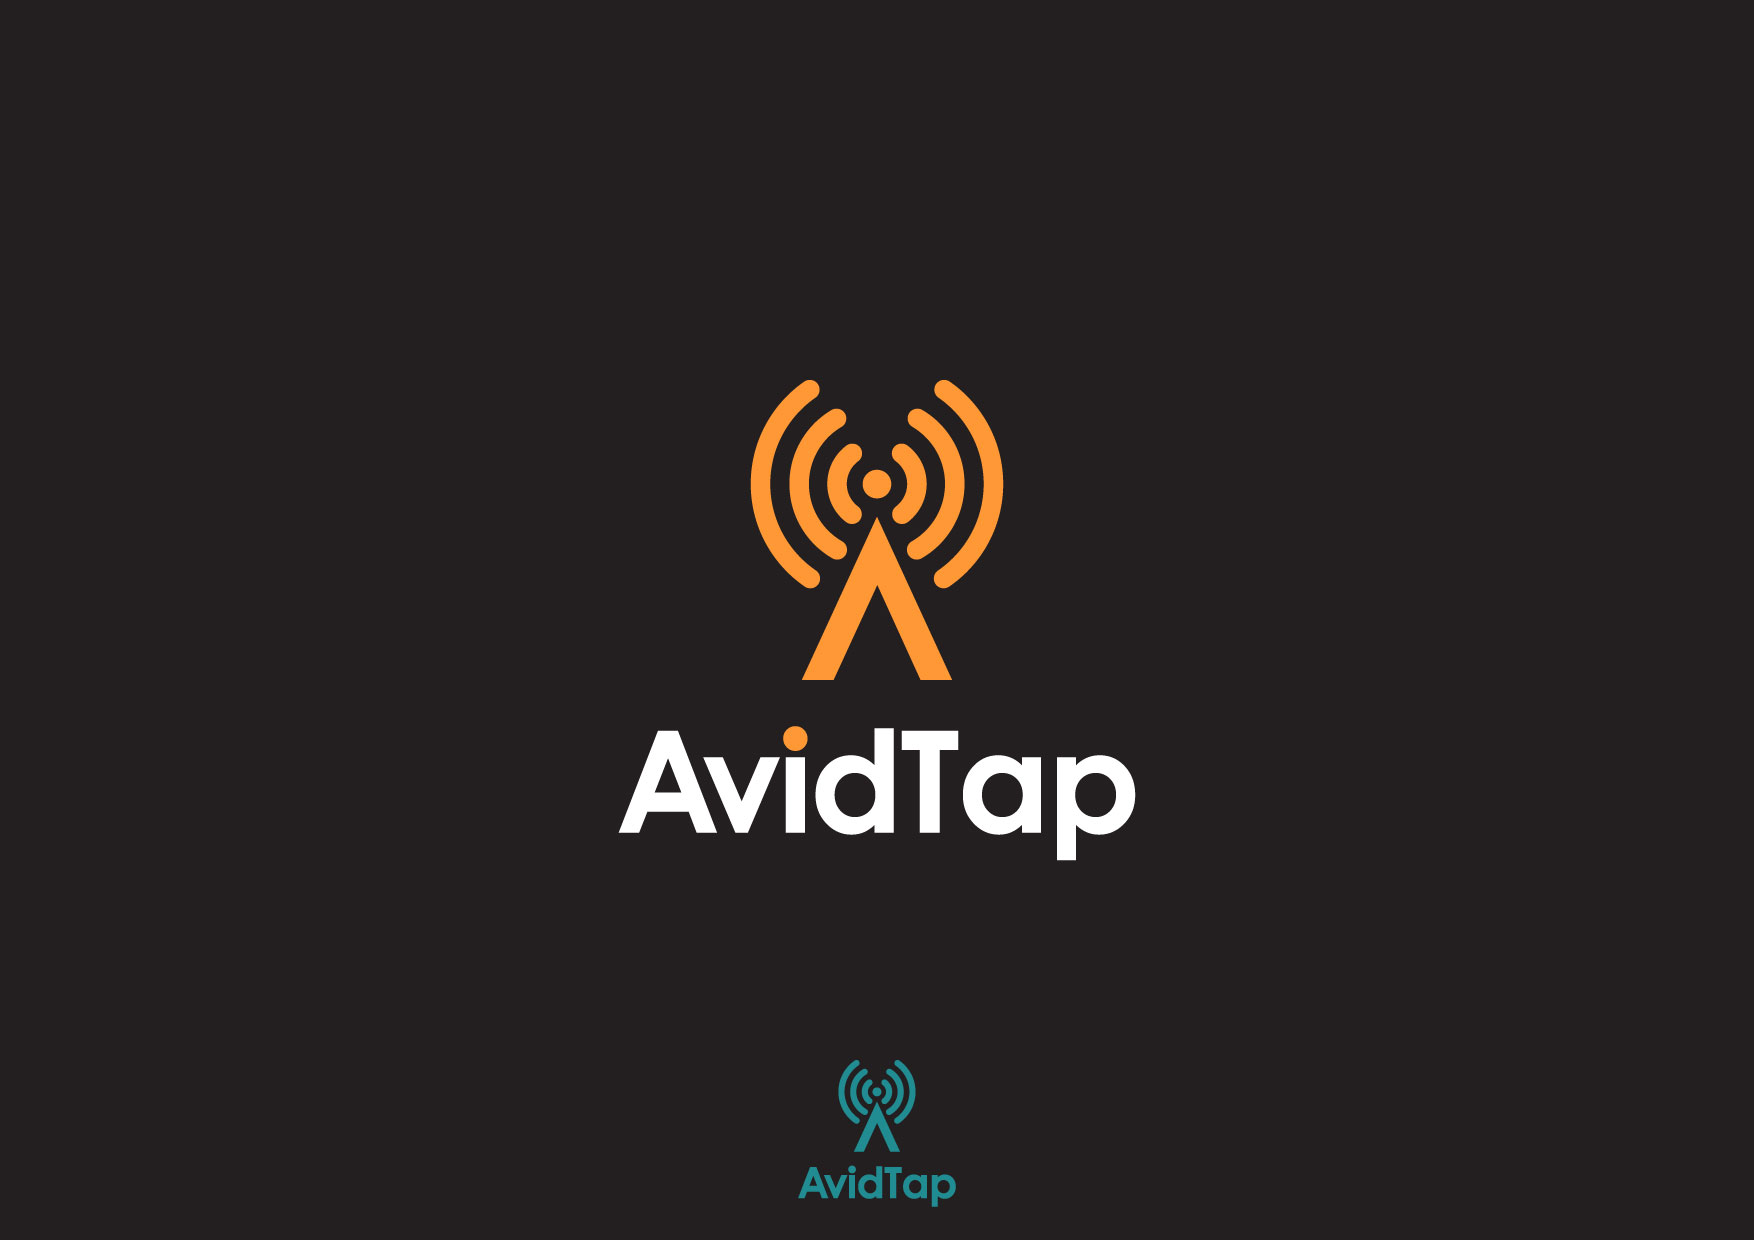 Logo Design by Nurgalih Destianto - Entry No. 98 in the Logo Design Contest Imaginative Logo Design for AvidTap.